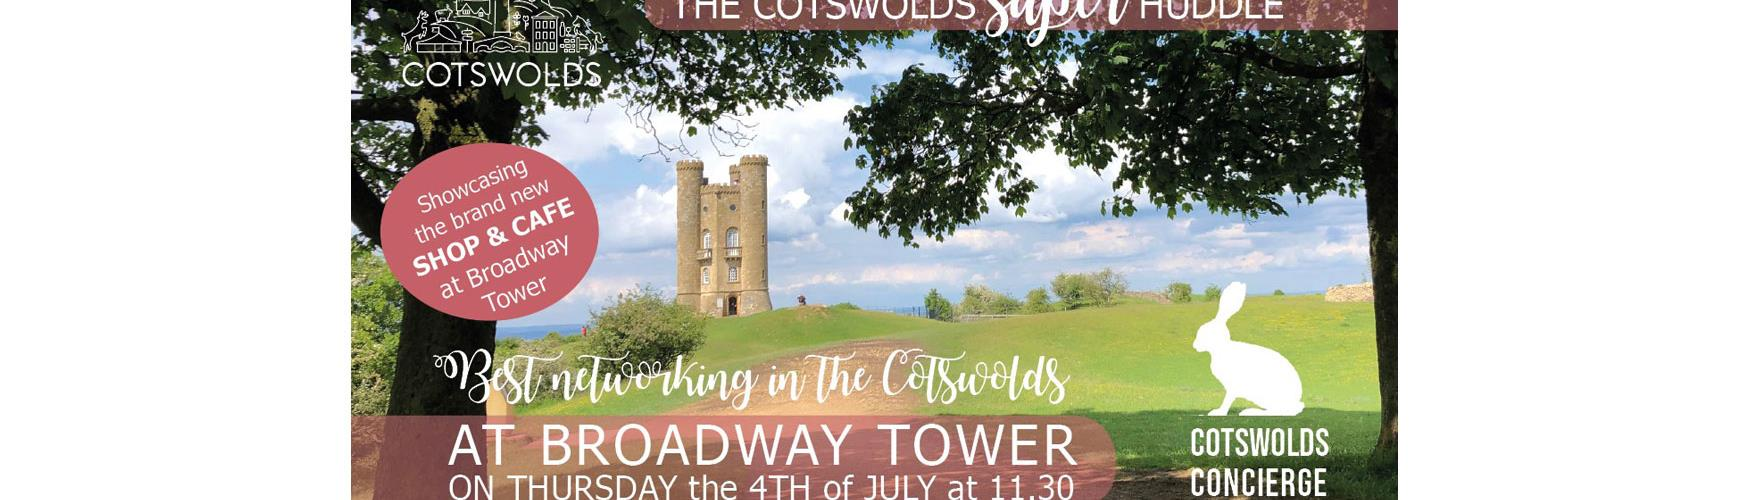 Join us at our next Cotswolds Super Huddle on Thursday 4 July from 11.30am onwards at Broadway Tower